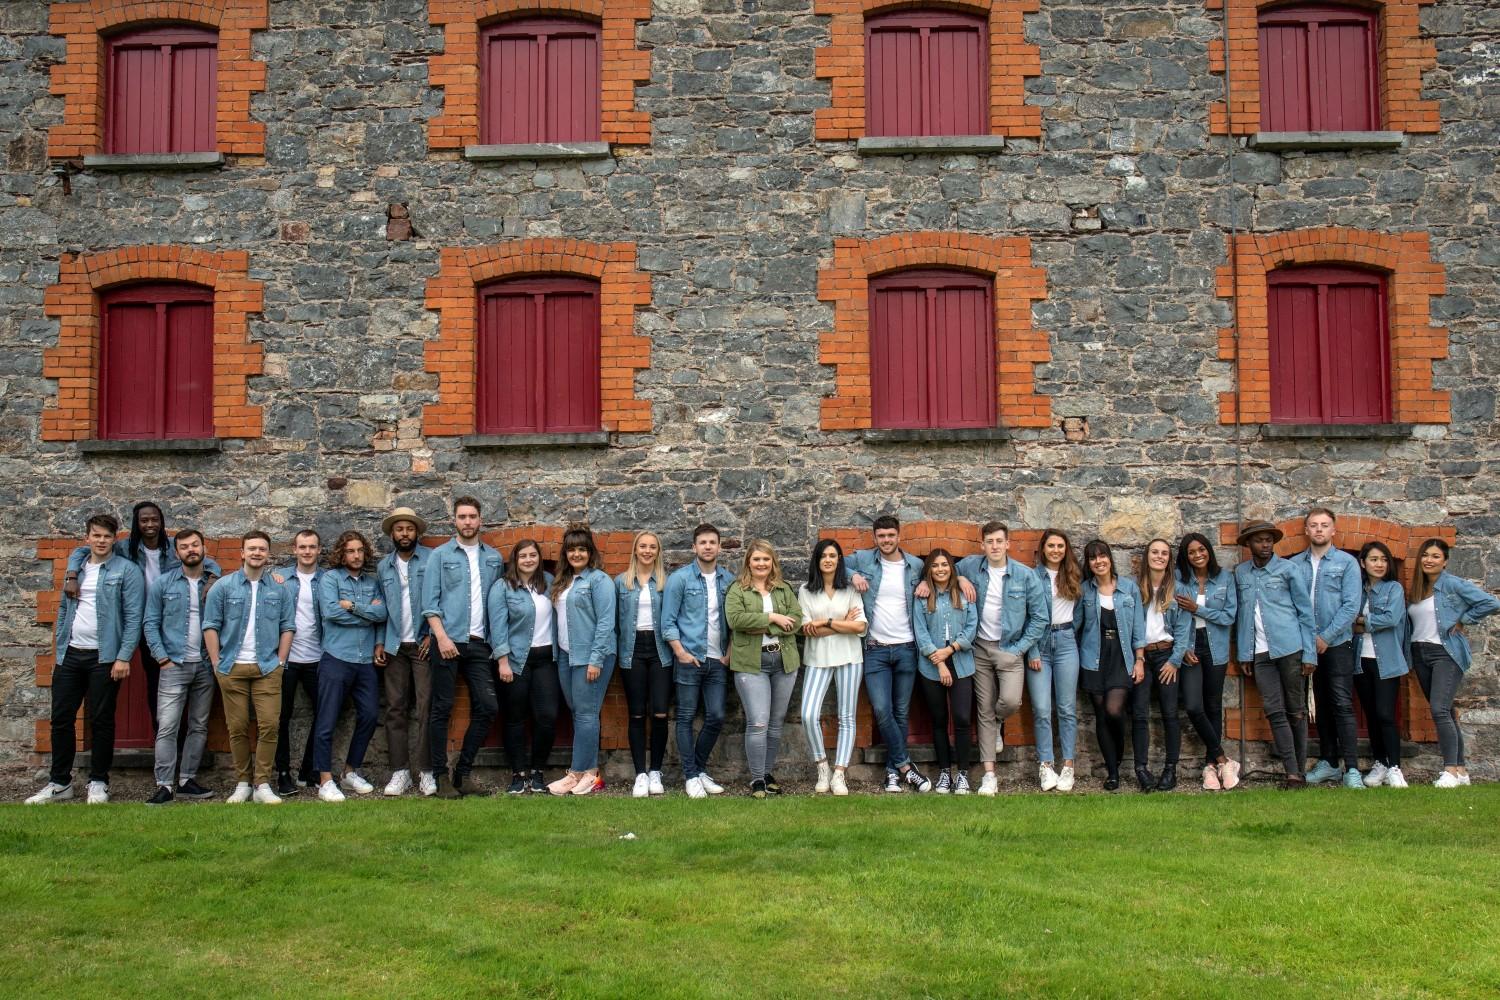 Irish Distillers, the company behind the Jameson brand, and the well-known Jameson International Graduate Programme has taken on two WIT School of Business graduates Kacey Maher and Paula Phelan on it 2019 graduate programme.